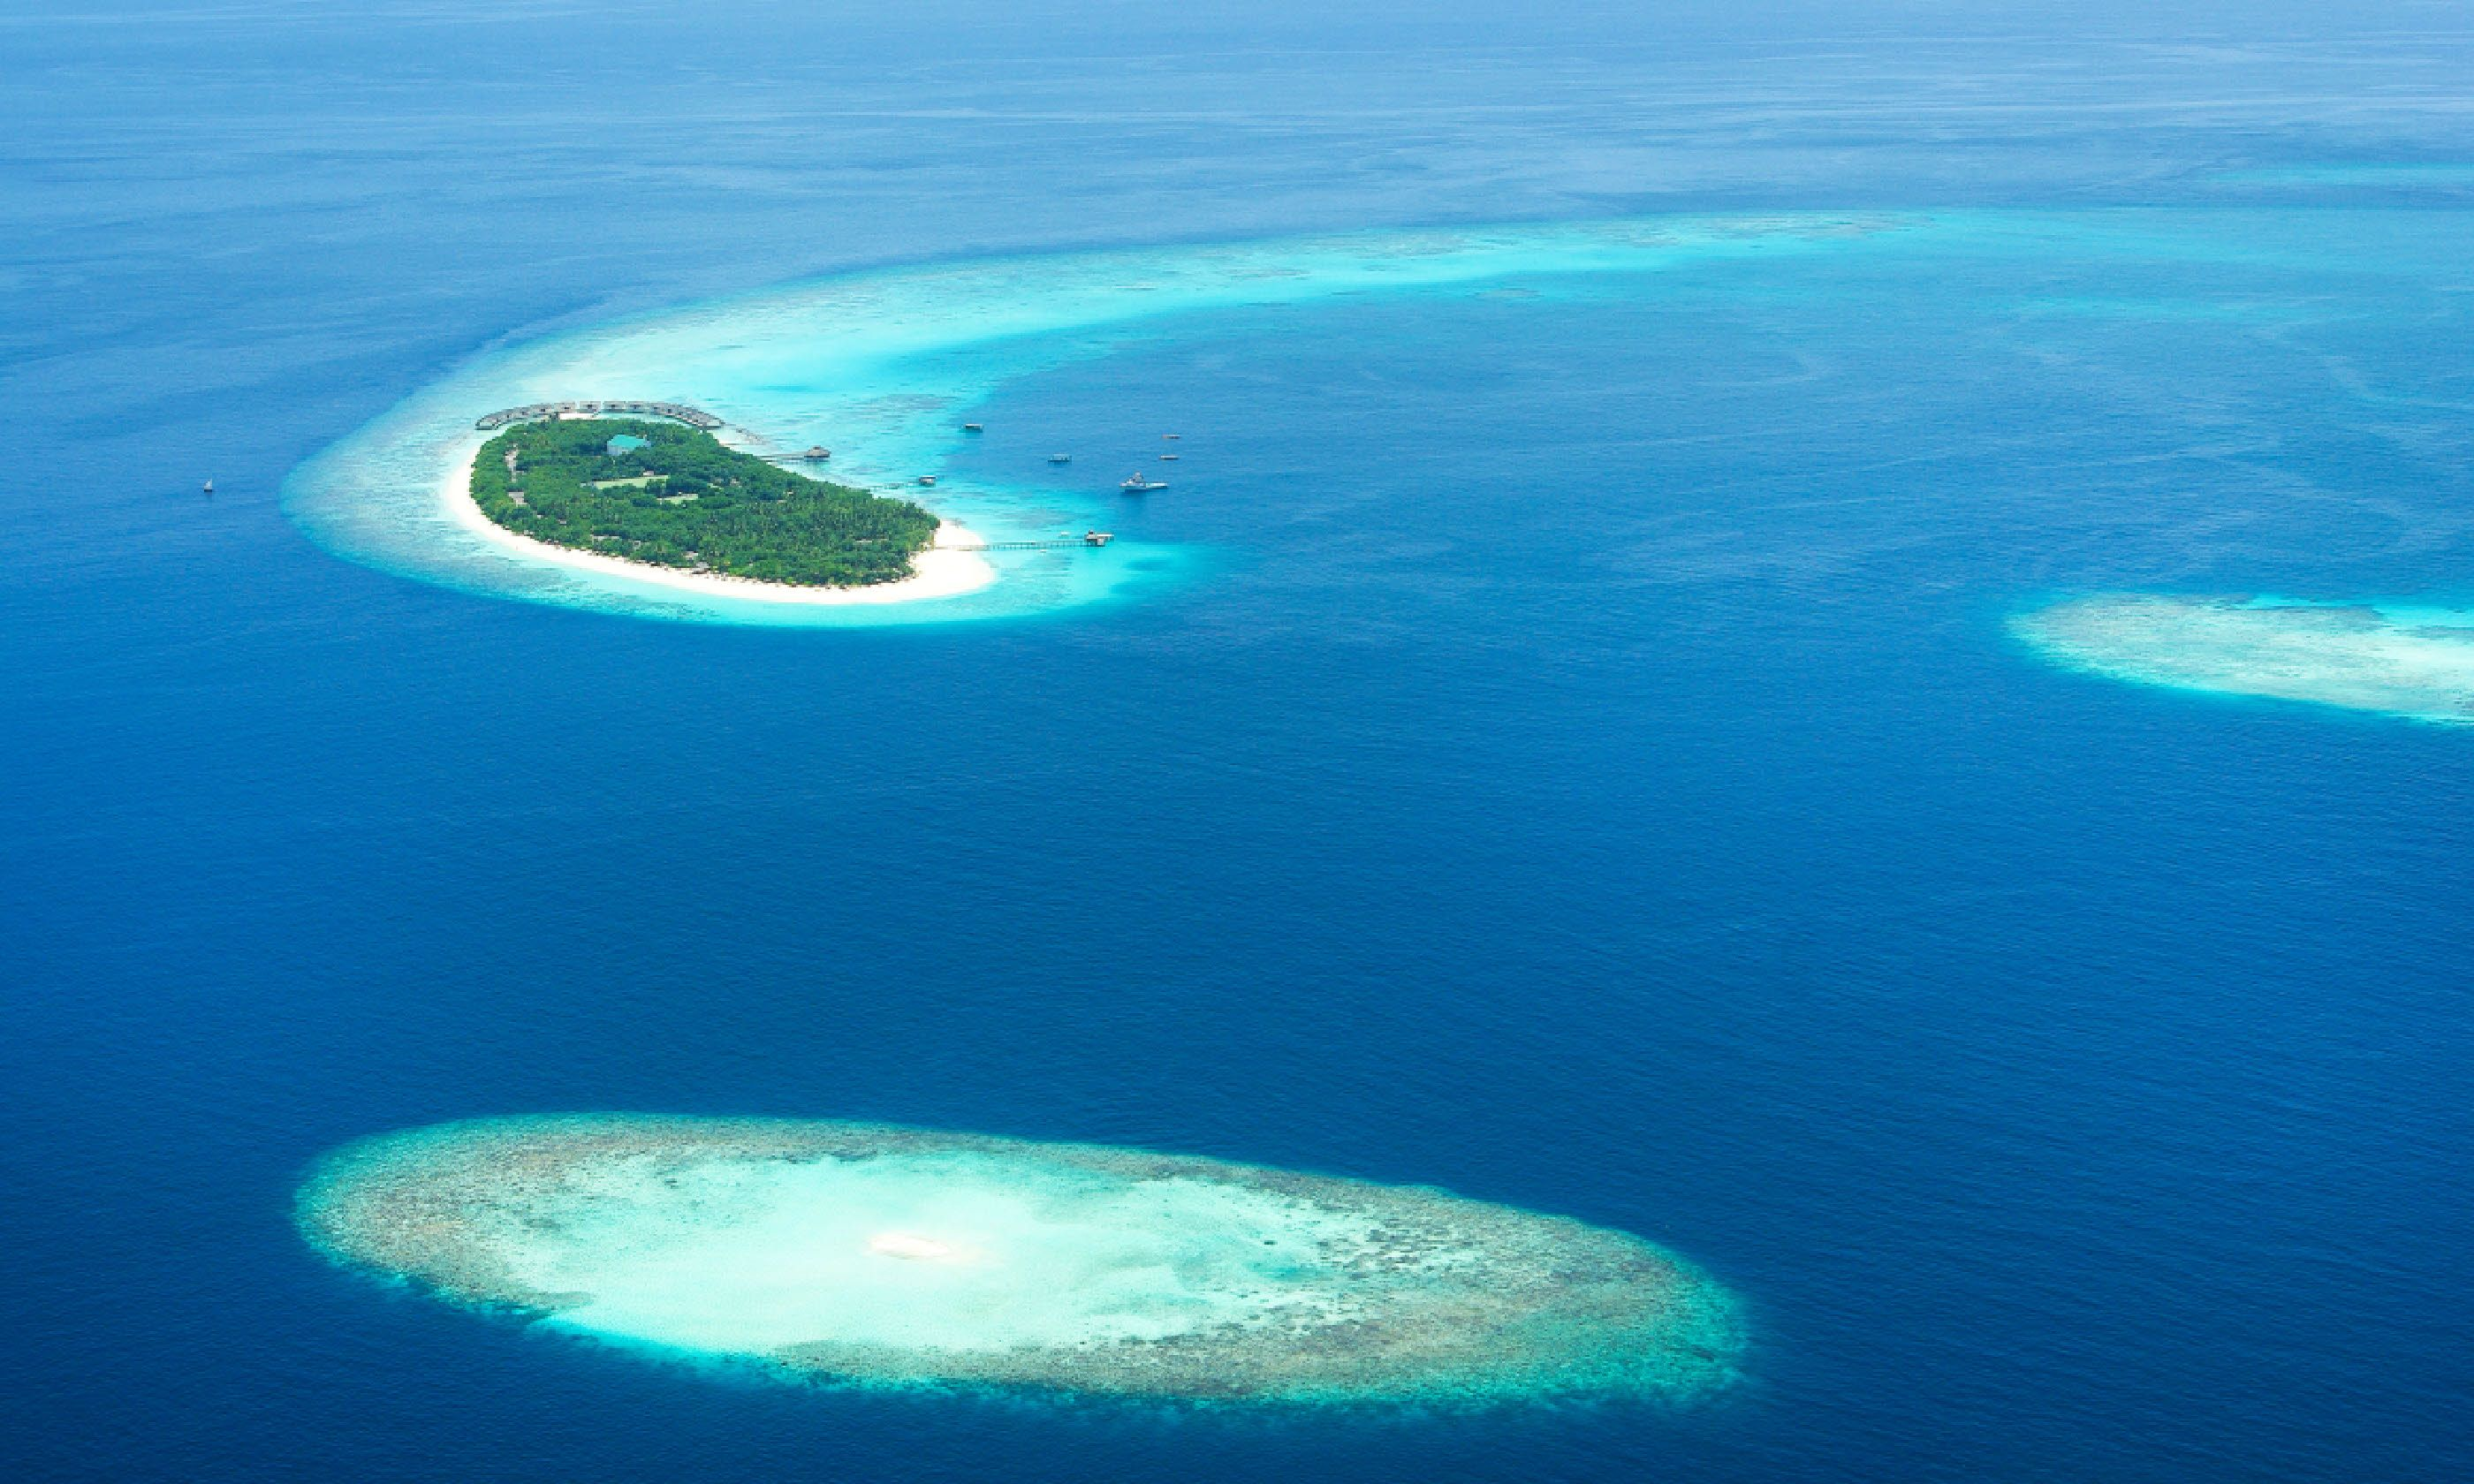 Tropical islands in Indian ocean from above, Maldives (Shutterstock)